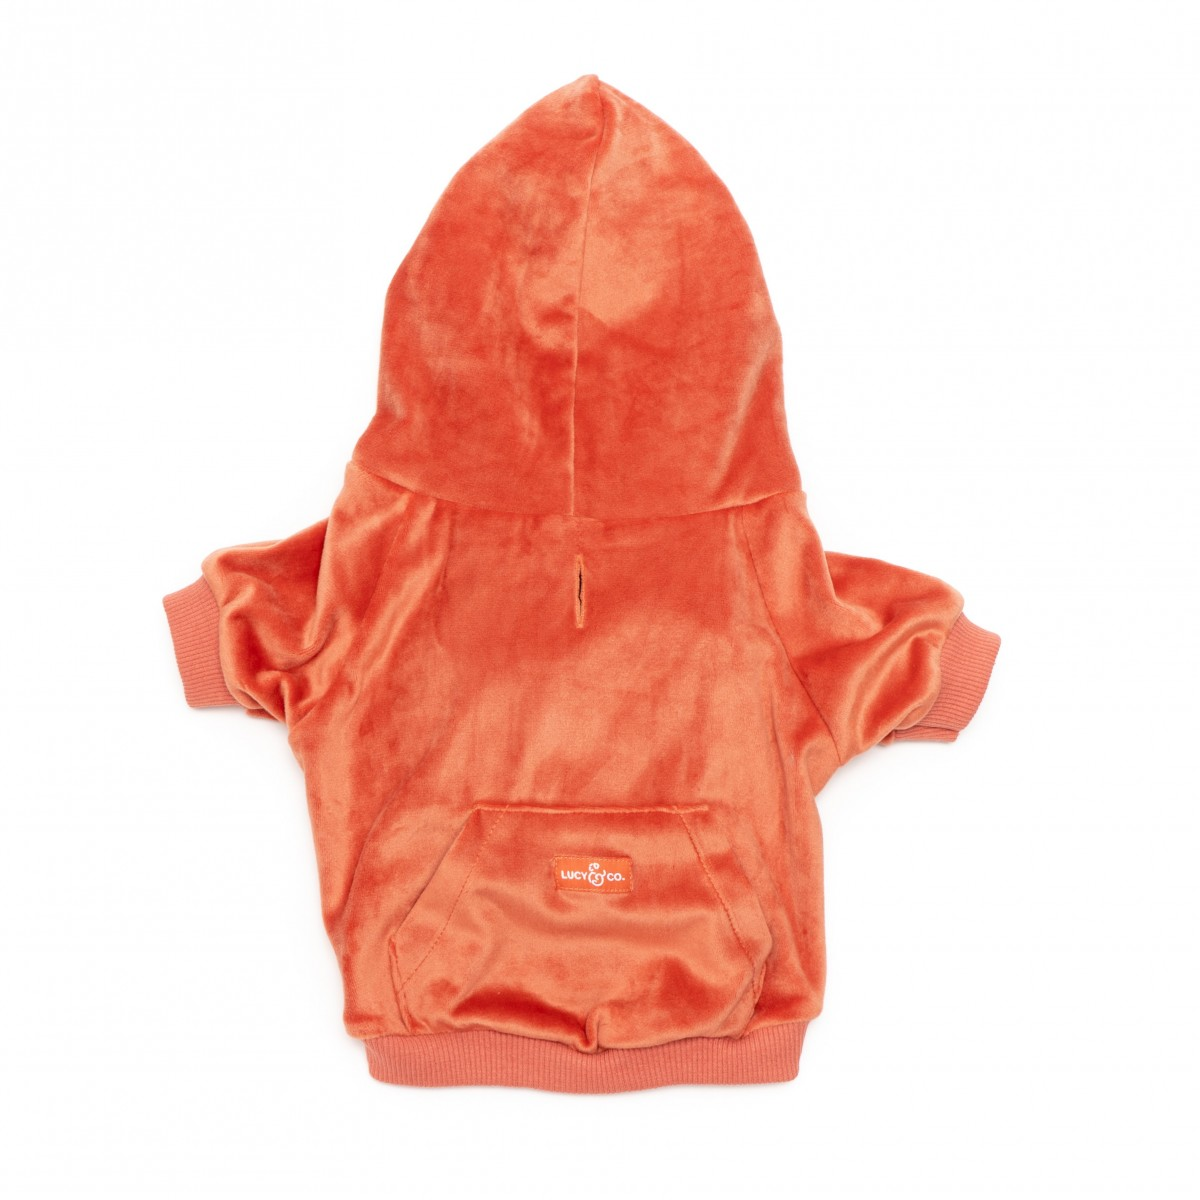 The Stylish Velour Hoodie